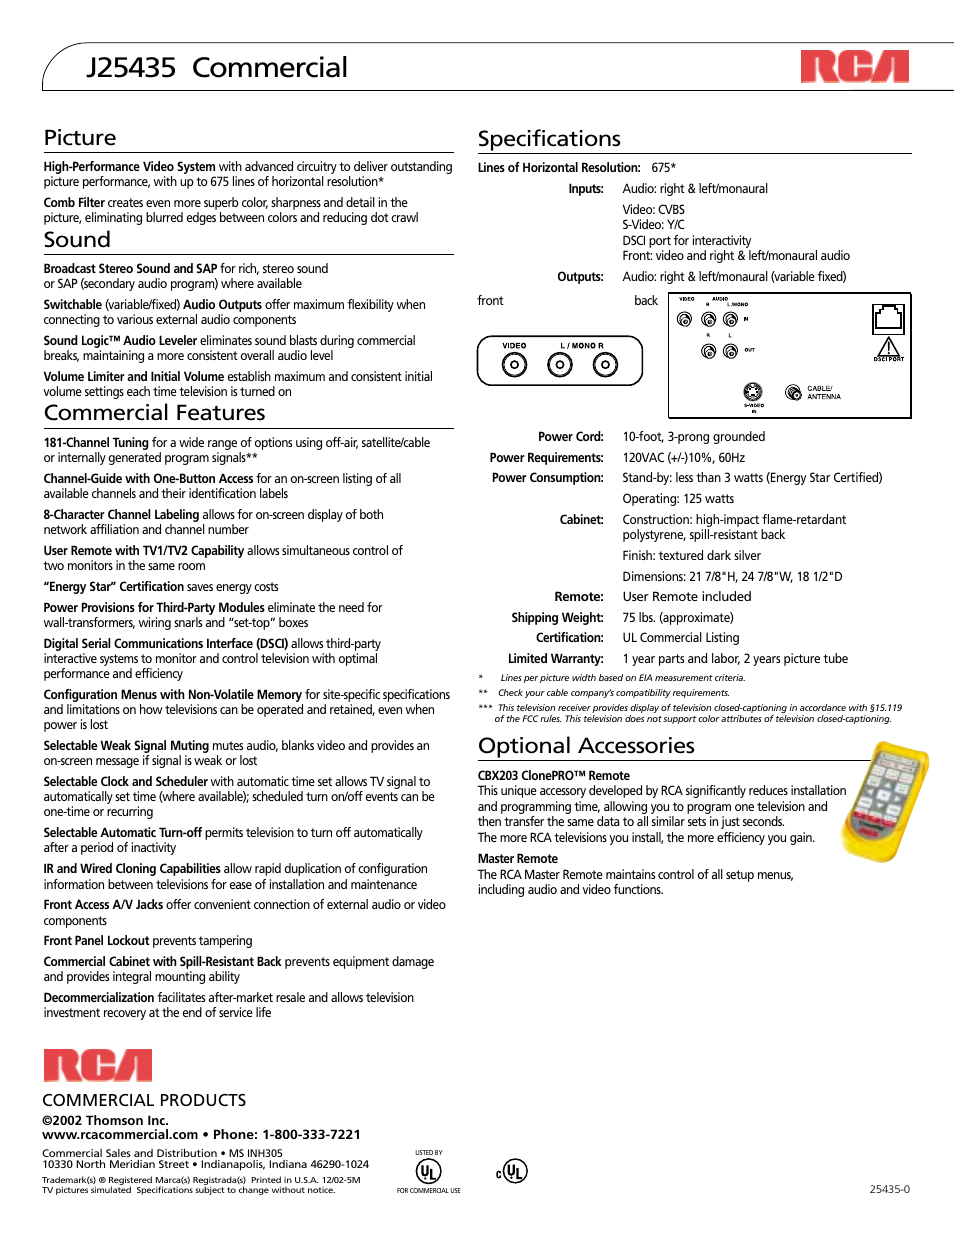 specifications optional accessories picture rca j25435 user rh manualsdir com 38 Special Reloading Data Manuals Manual Icon